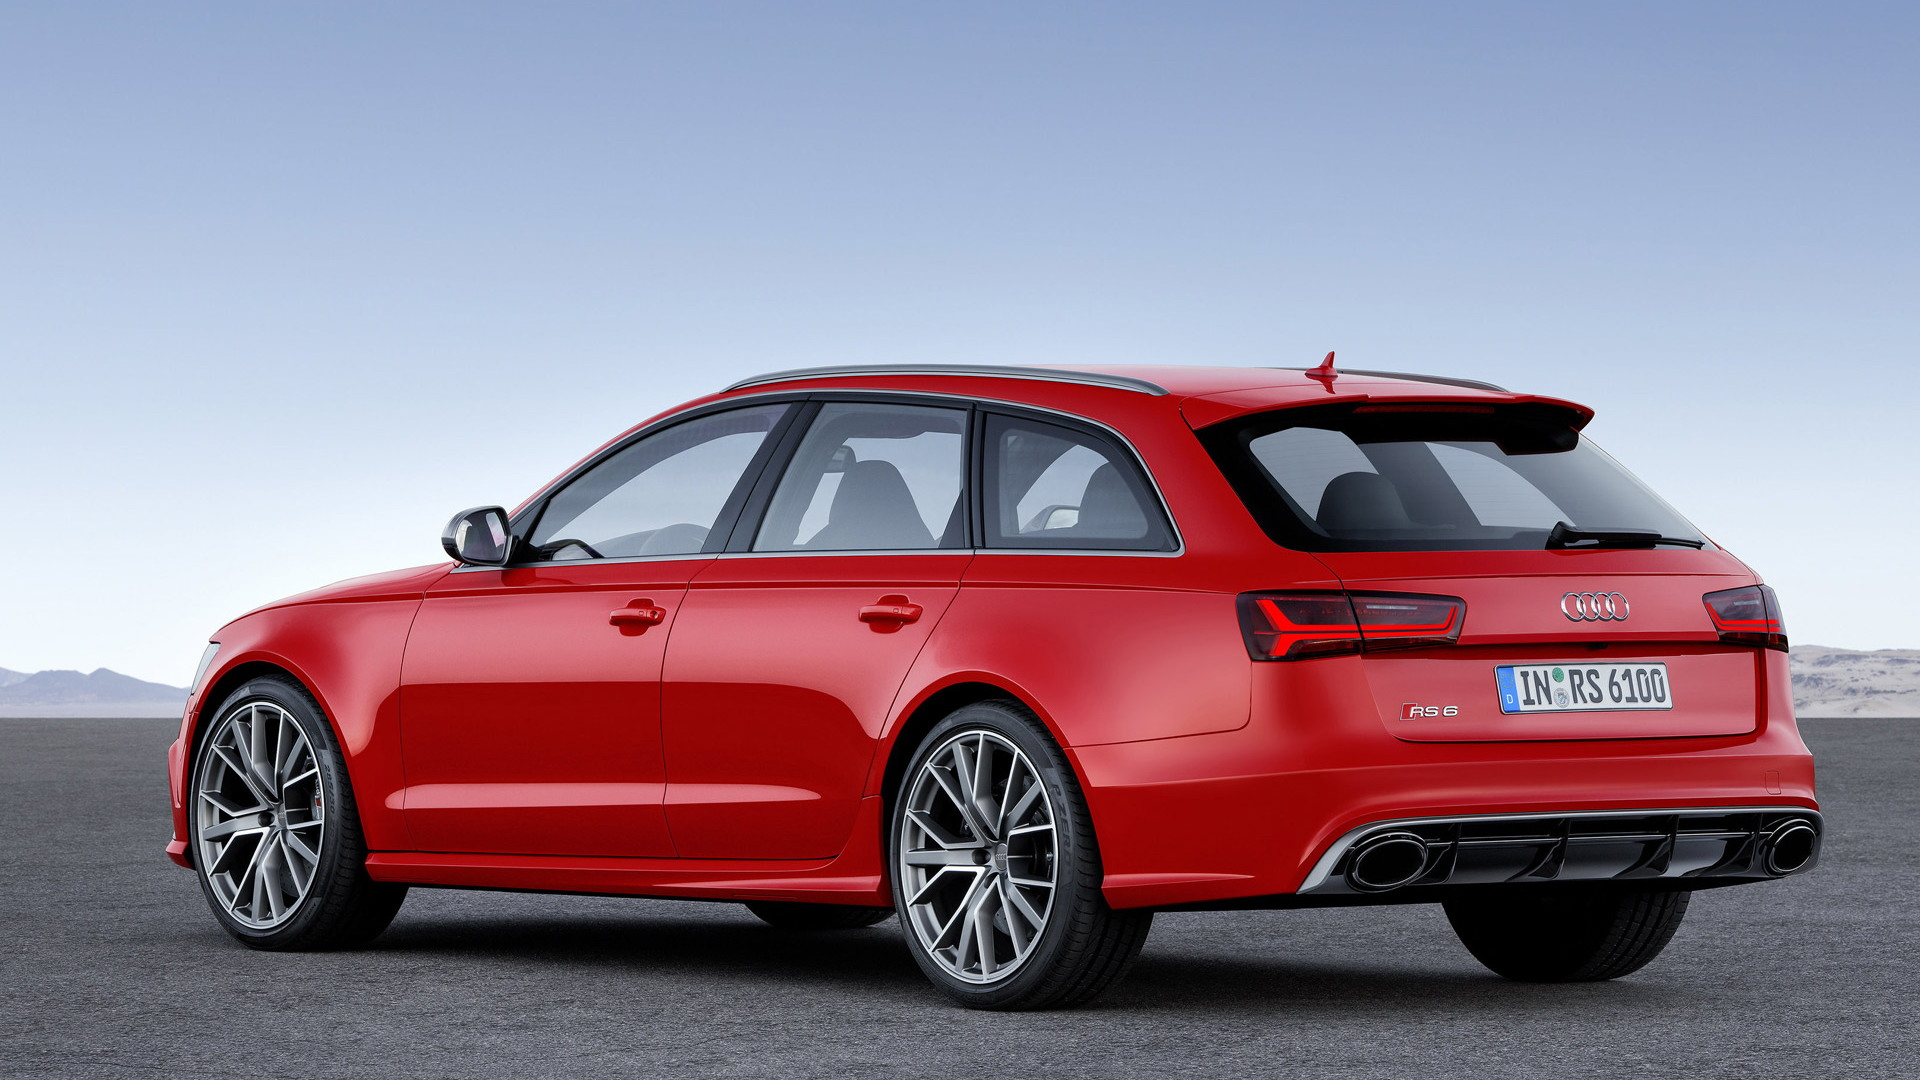 Garage Audi Tours Audi Rs6 News Breaking News Photos Videos Motor Authority